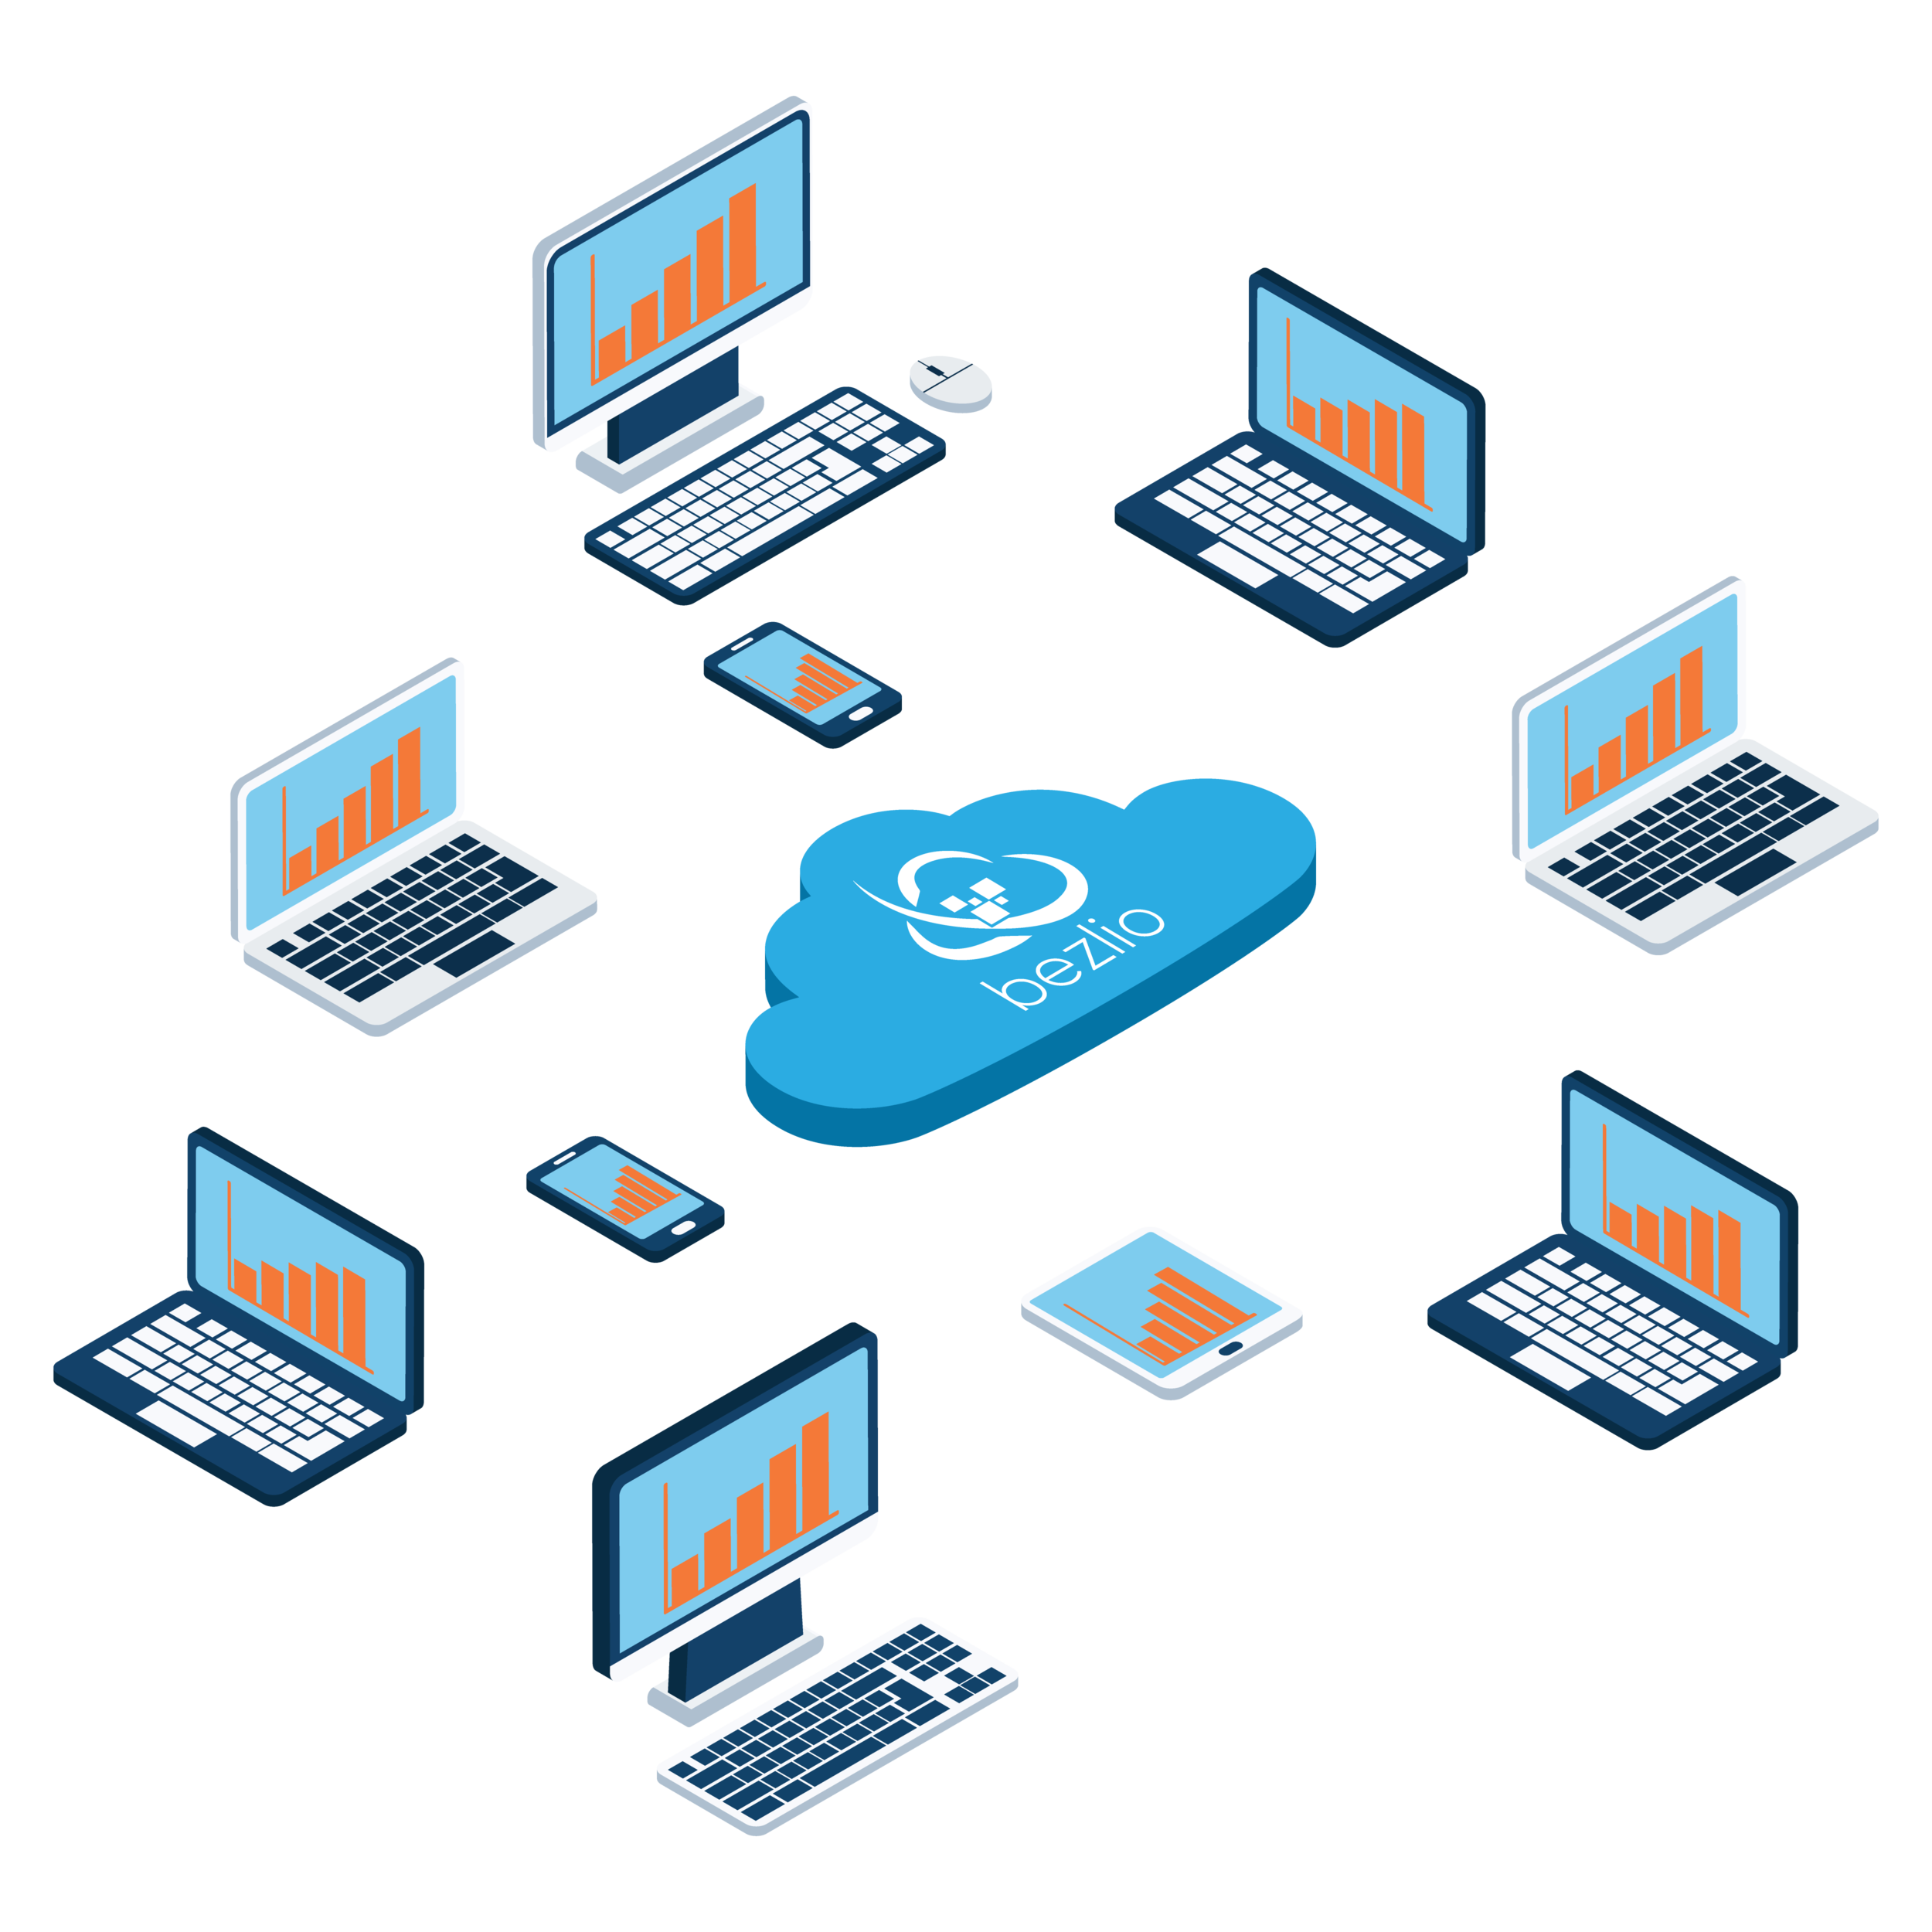 An illustration of Bezlio cloud, surrounded by various mobile devices which illustrates Bezlio acting as a Crystal Reports mobile solution.